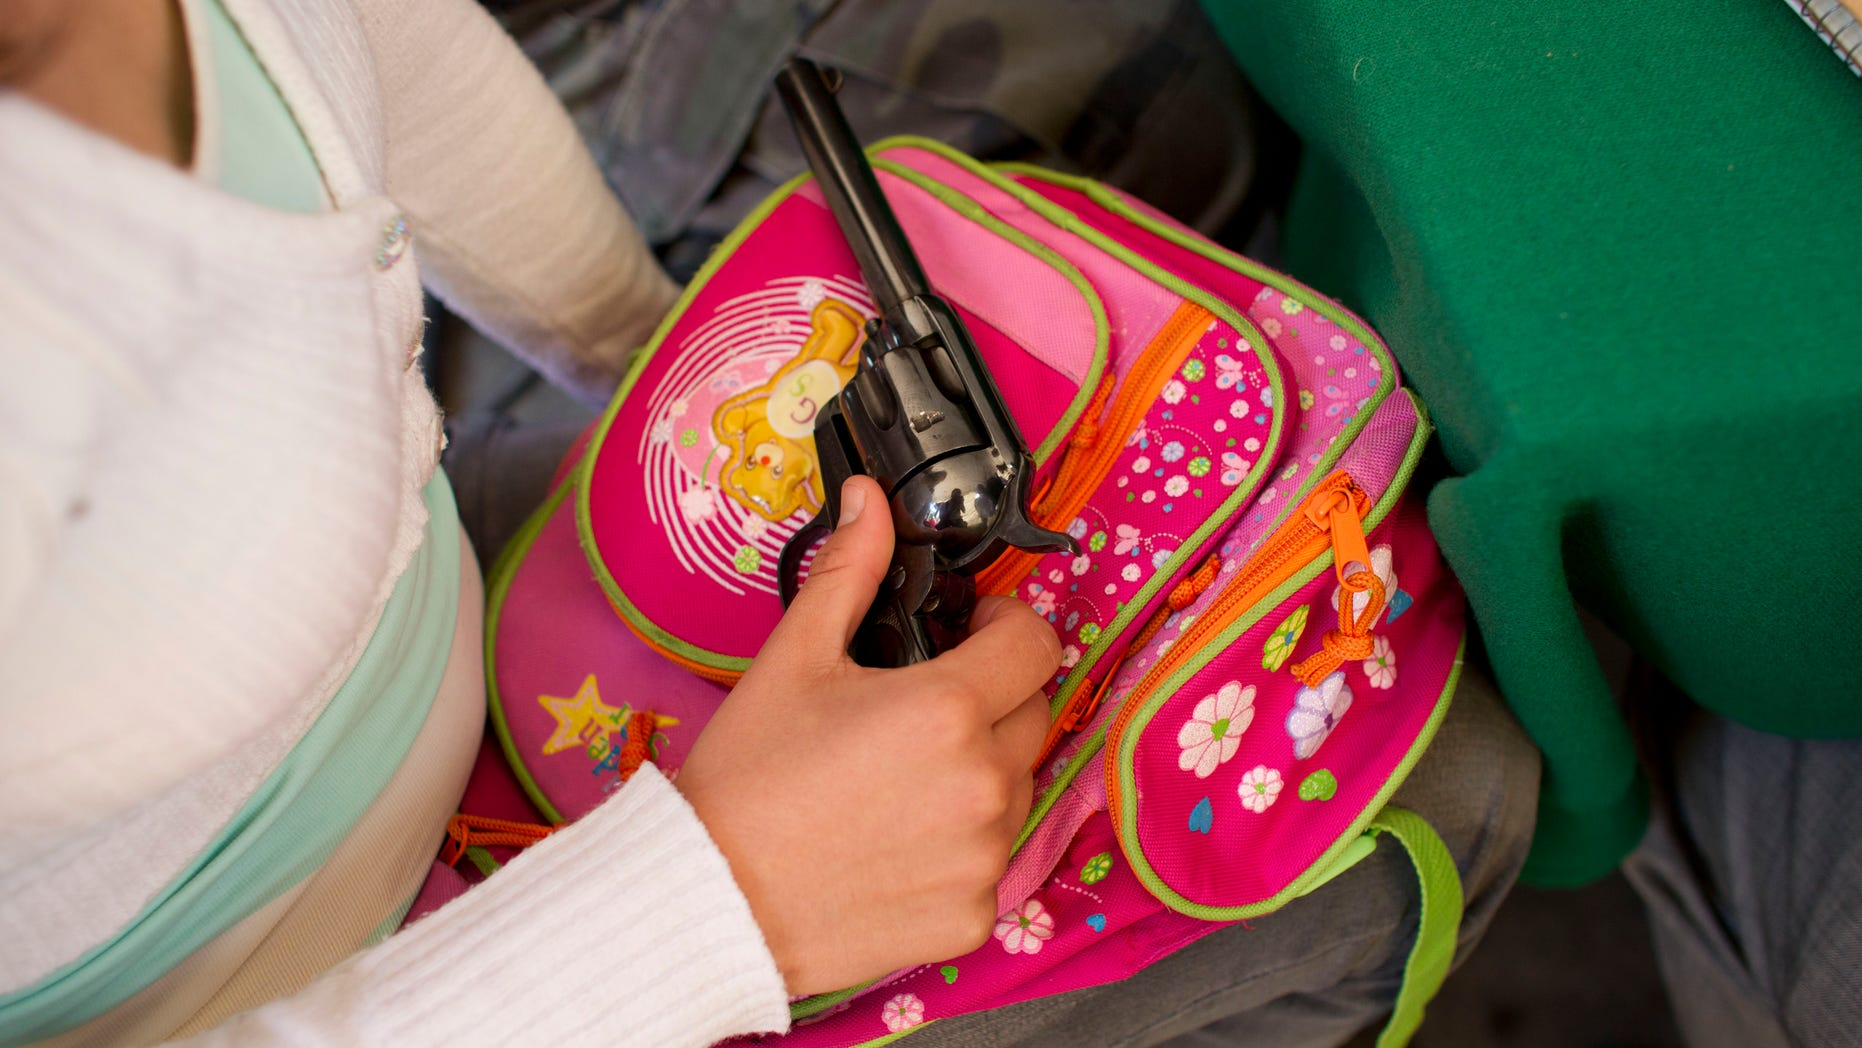 Dec. 24, 2012: A woman holds a revolver before handing it over to city officials during a government program that exchanges people's weapons for bicycles, computers, tablets or money, on Christmas Eve in the Iztapalapa neighborhood of Mexico City.